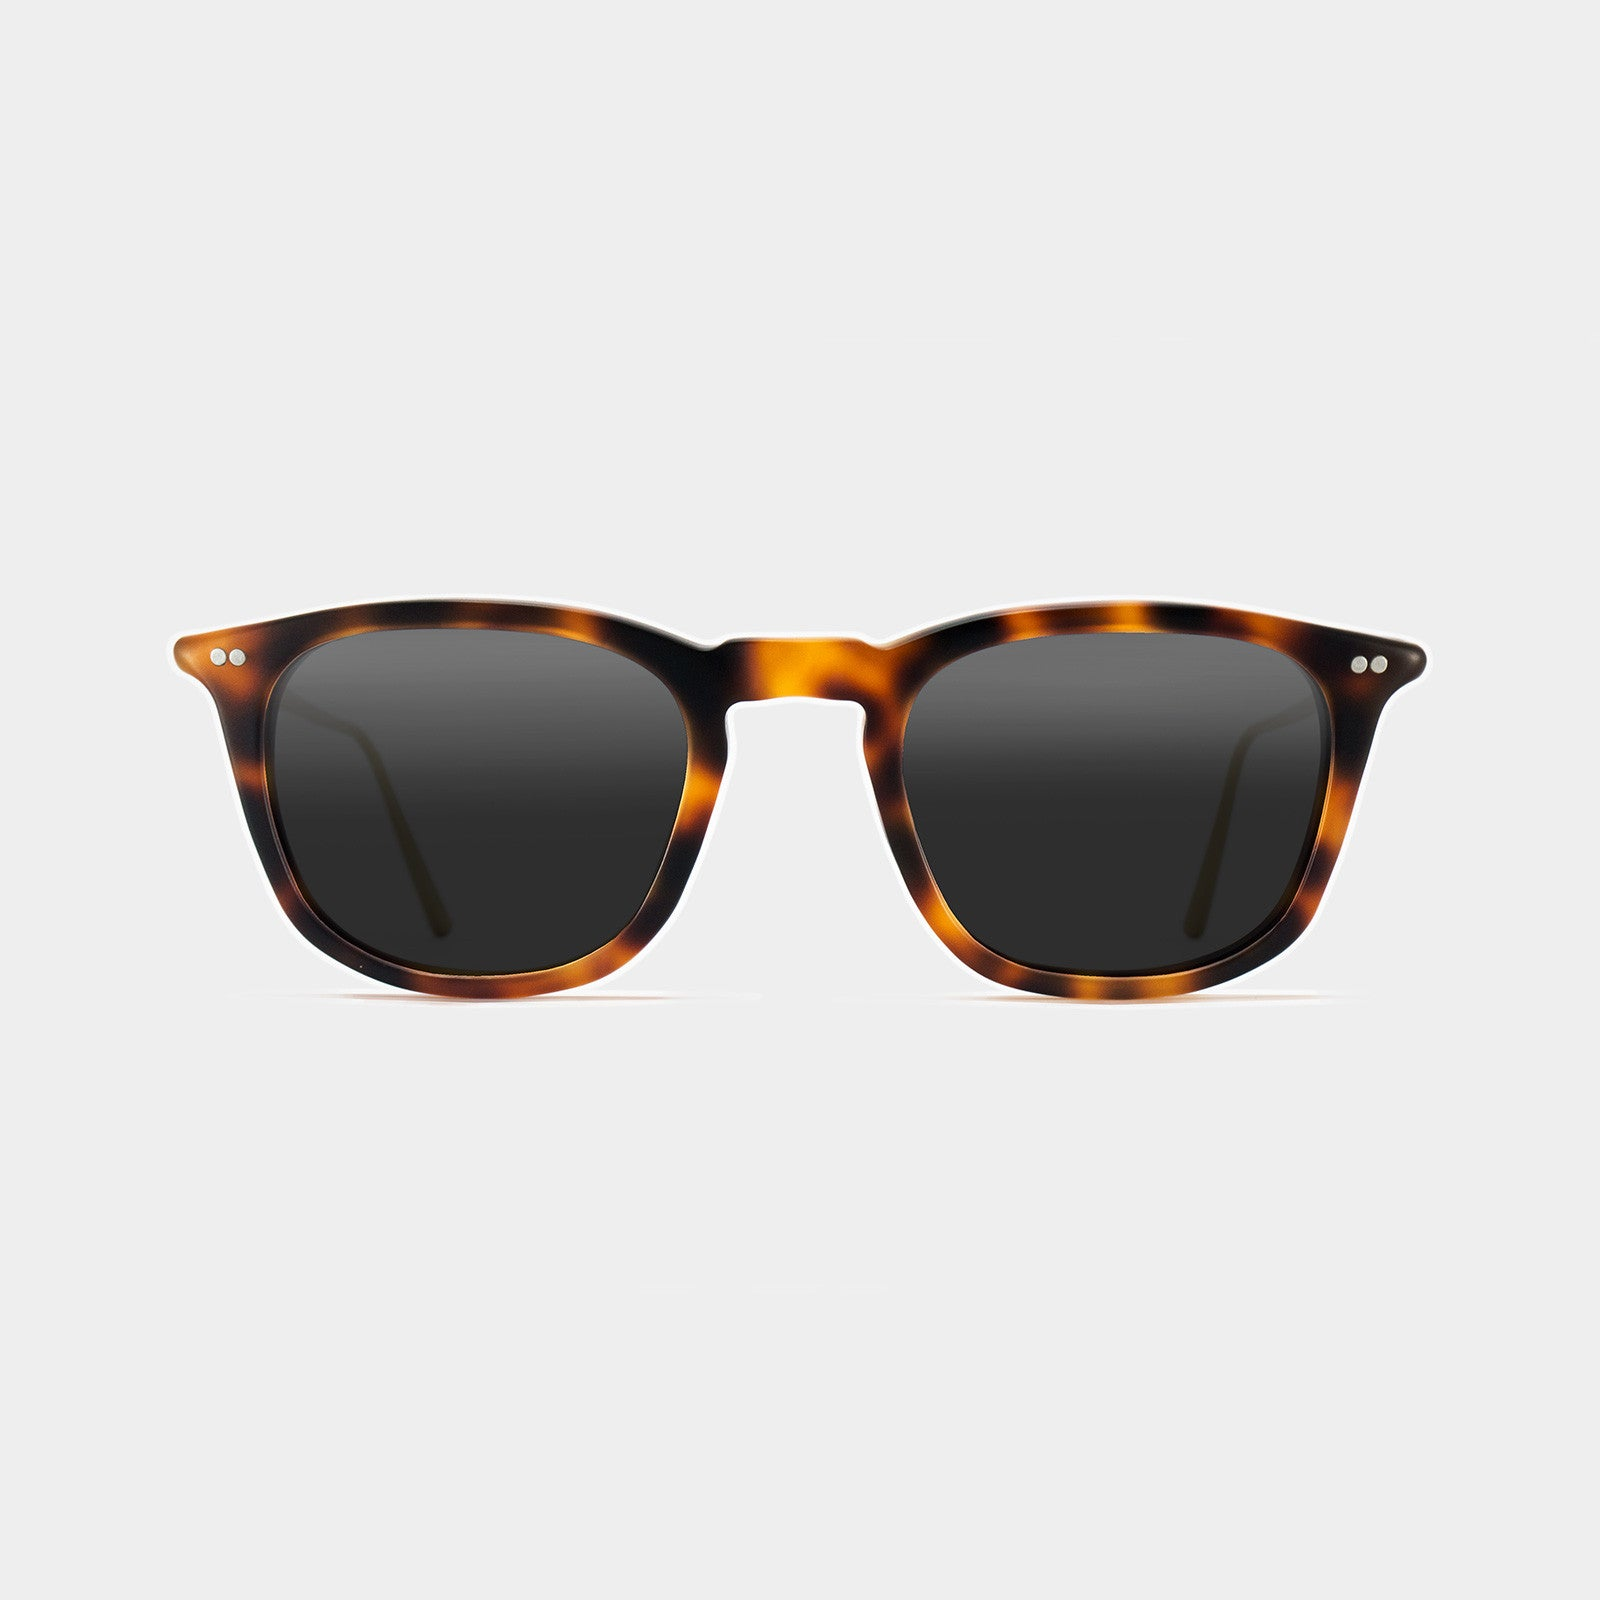 Profile Sunglasses trt